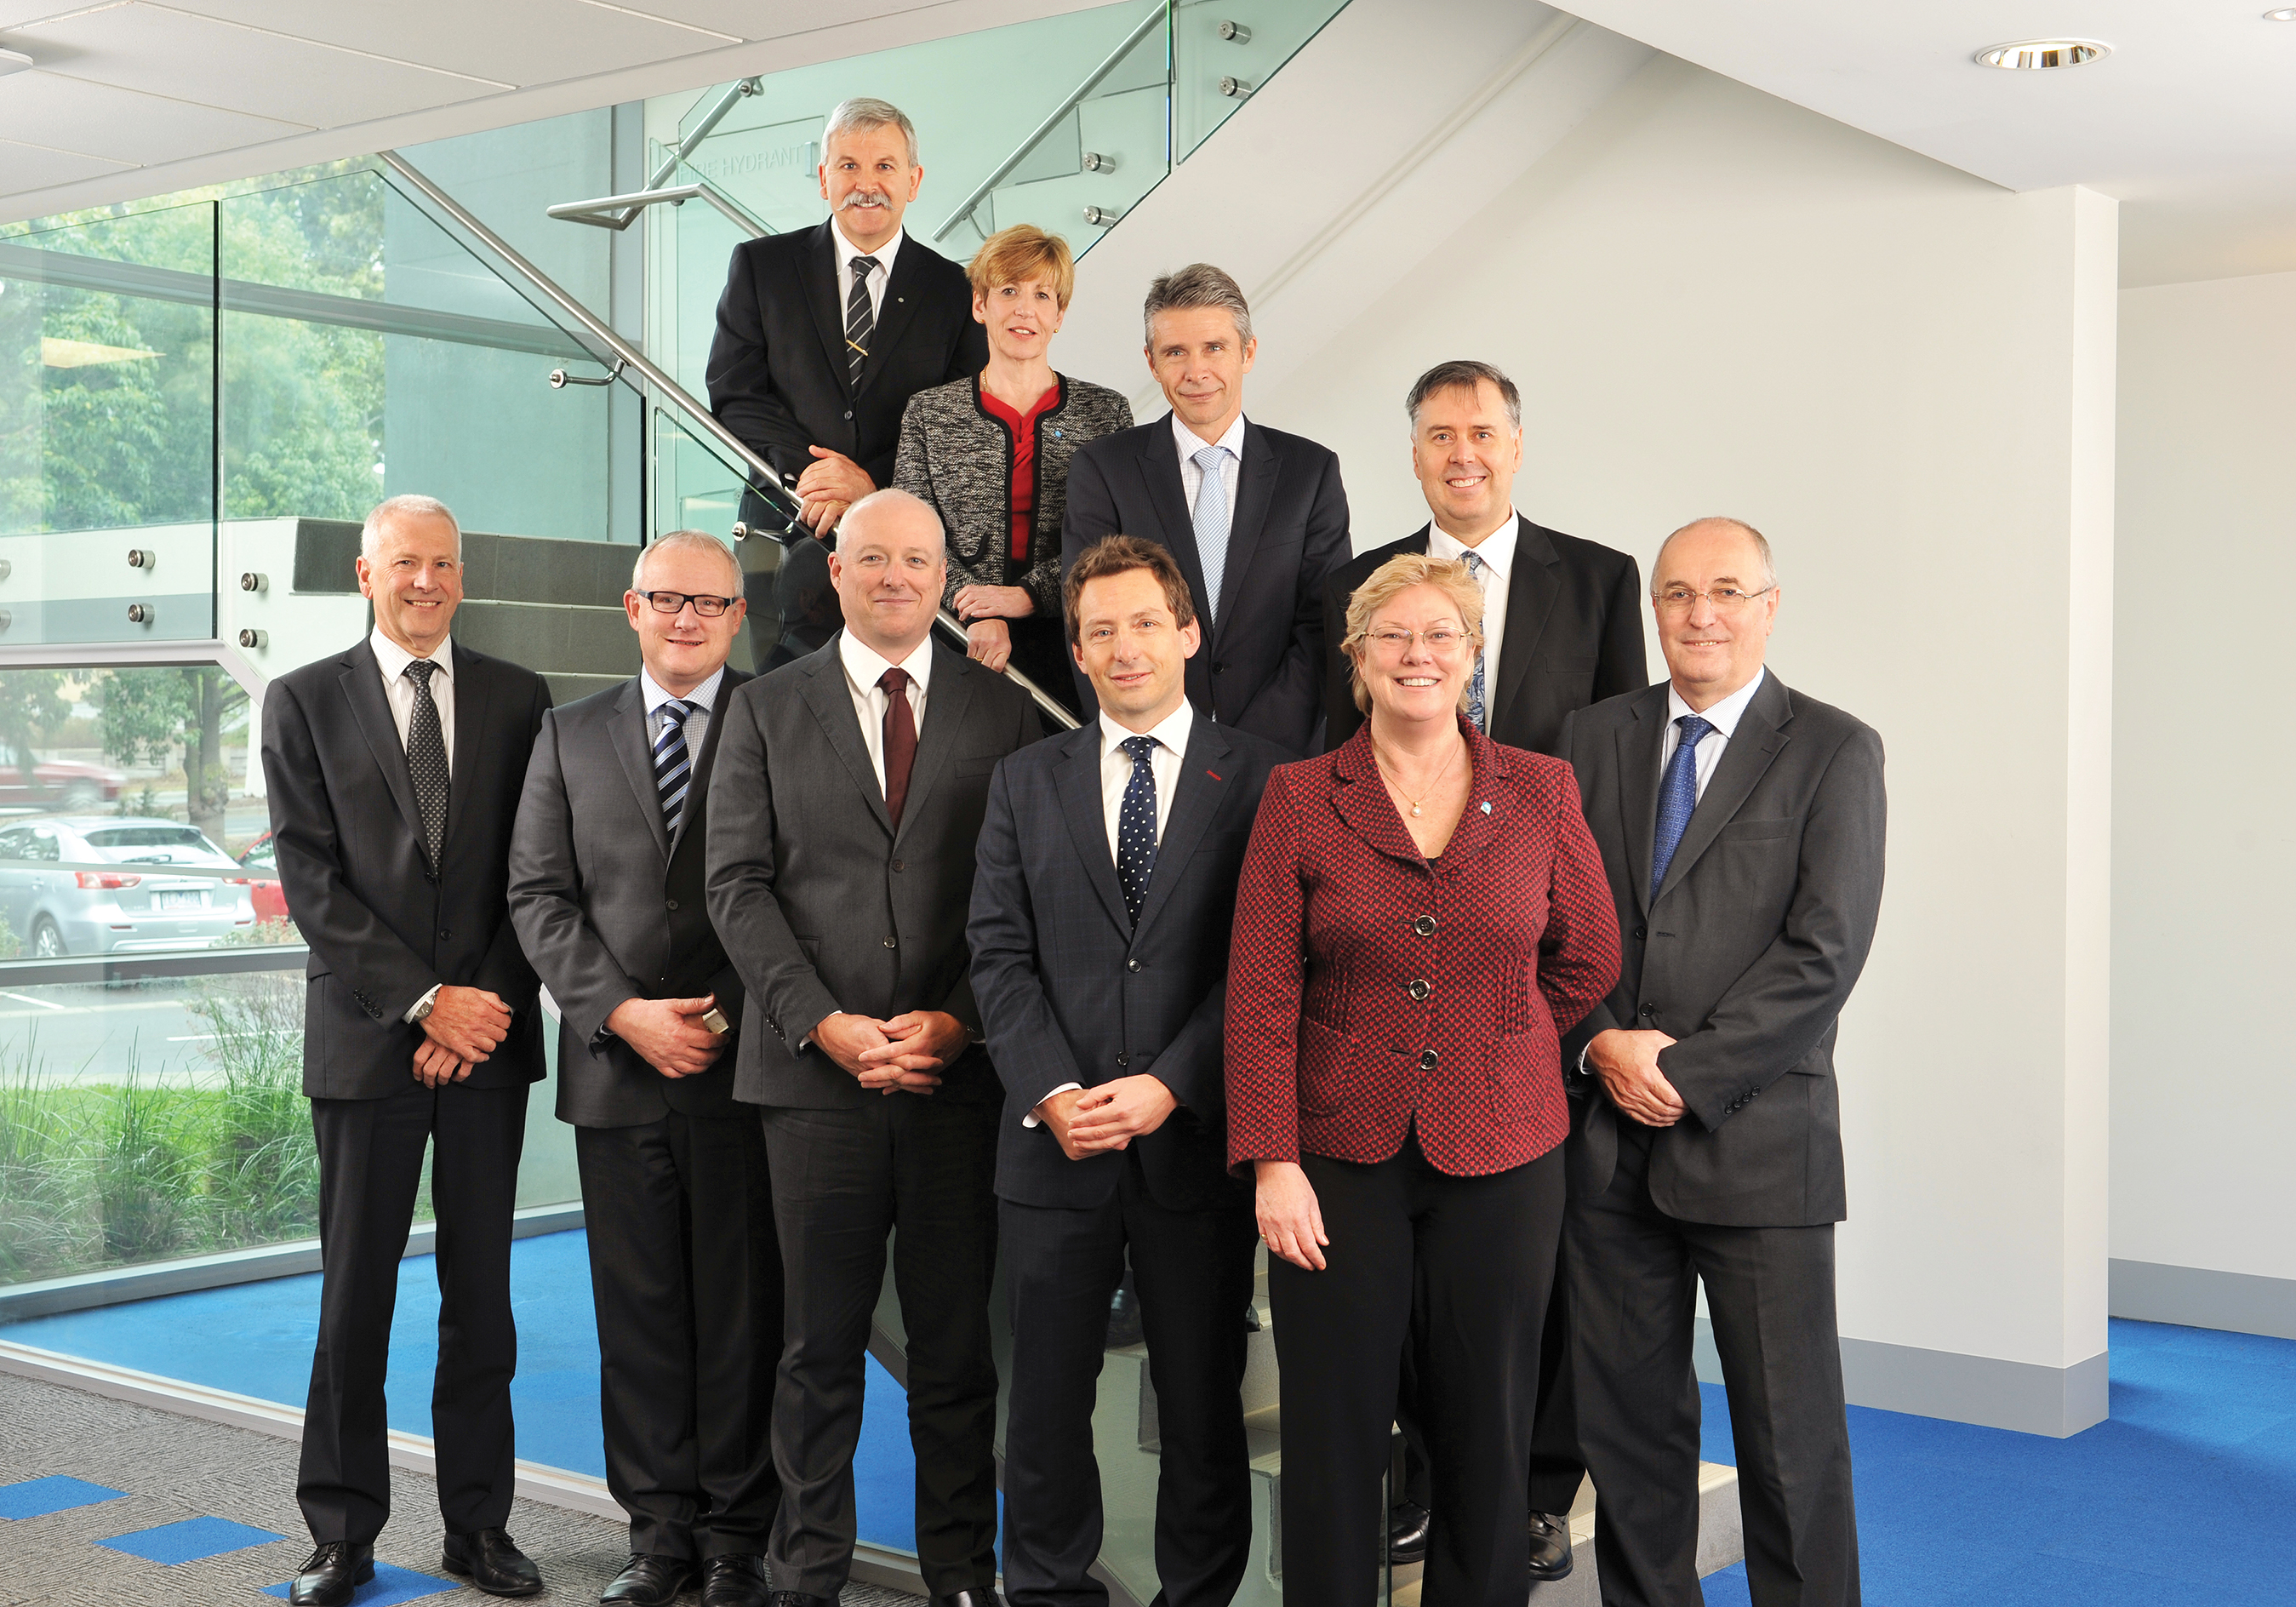 Executive team 2012- 13. From left to right, back row on stairs to front row: Dr Tom Hatton PSM, Ms Hazel Bennett, Mr Mike Whelan, Mr Craig Roy, Dr Alastair Robertson, Dr Calum Drummond, Dr Andrew Johnson, Mr Rod Bloom, Dr Megan Clark (Chief Executive), Dr David Williams.